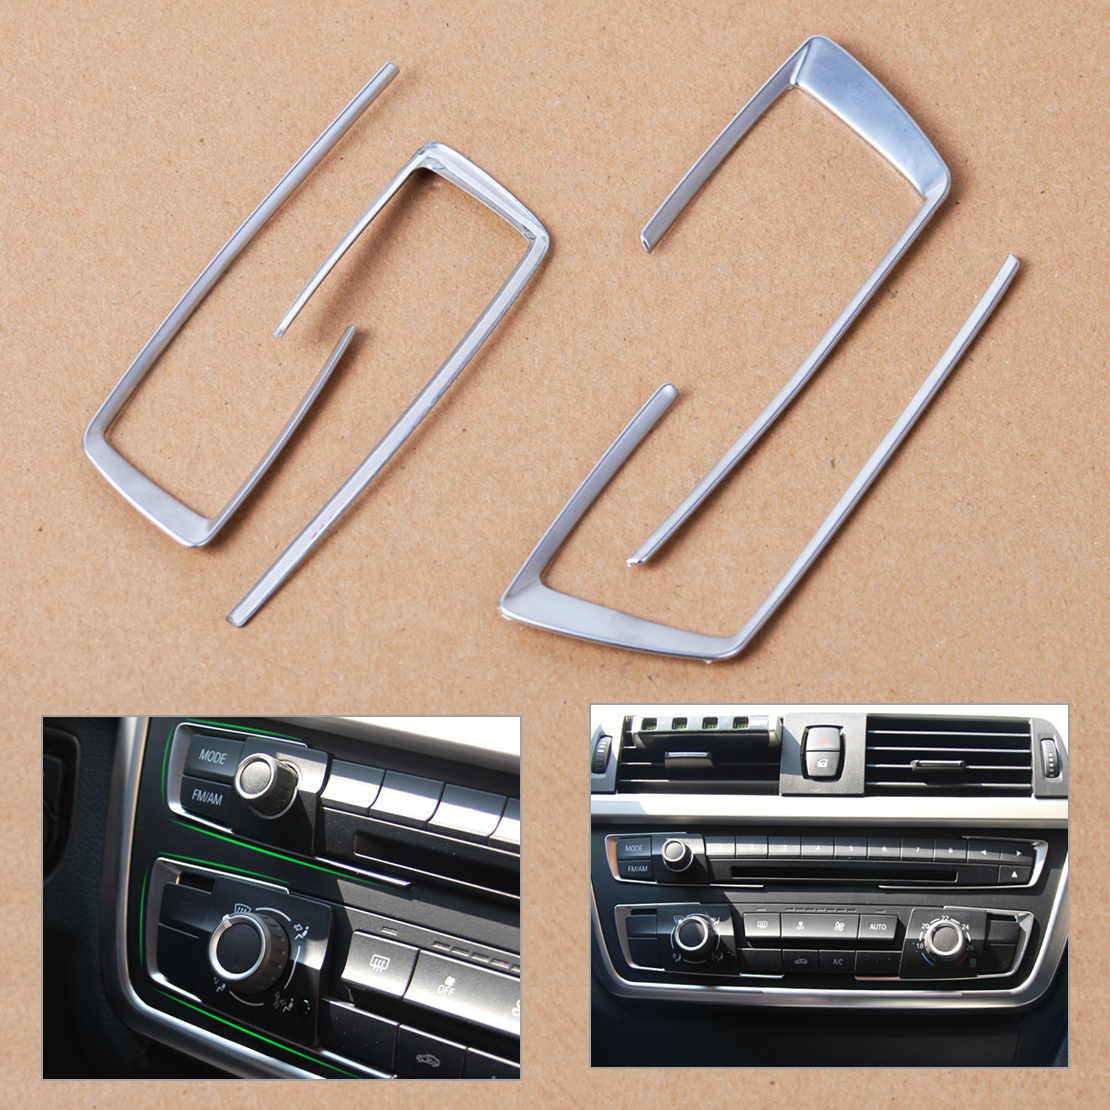 Beler Nuovo 1Pc Chrome Dashboard Copertura Console Trim Interni Auto Stylings Per BMW 3 Serie 4 F30 F32 F34 320 420 2013 2014 2015